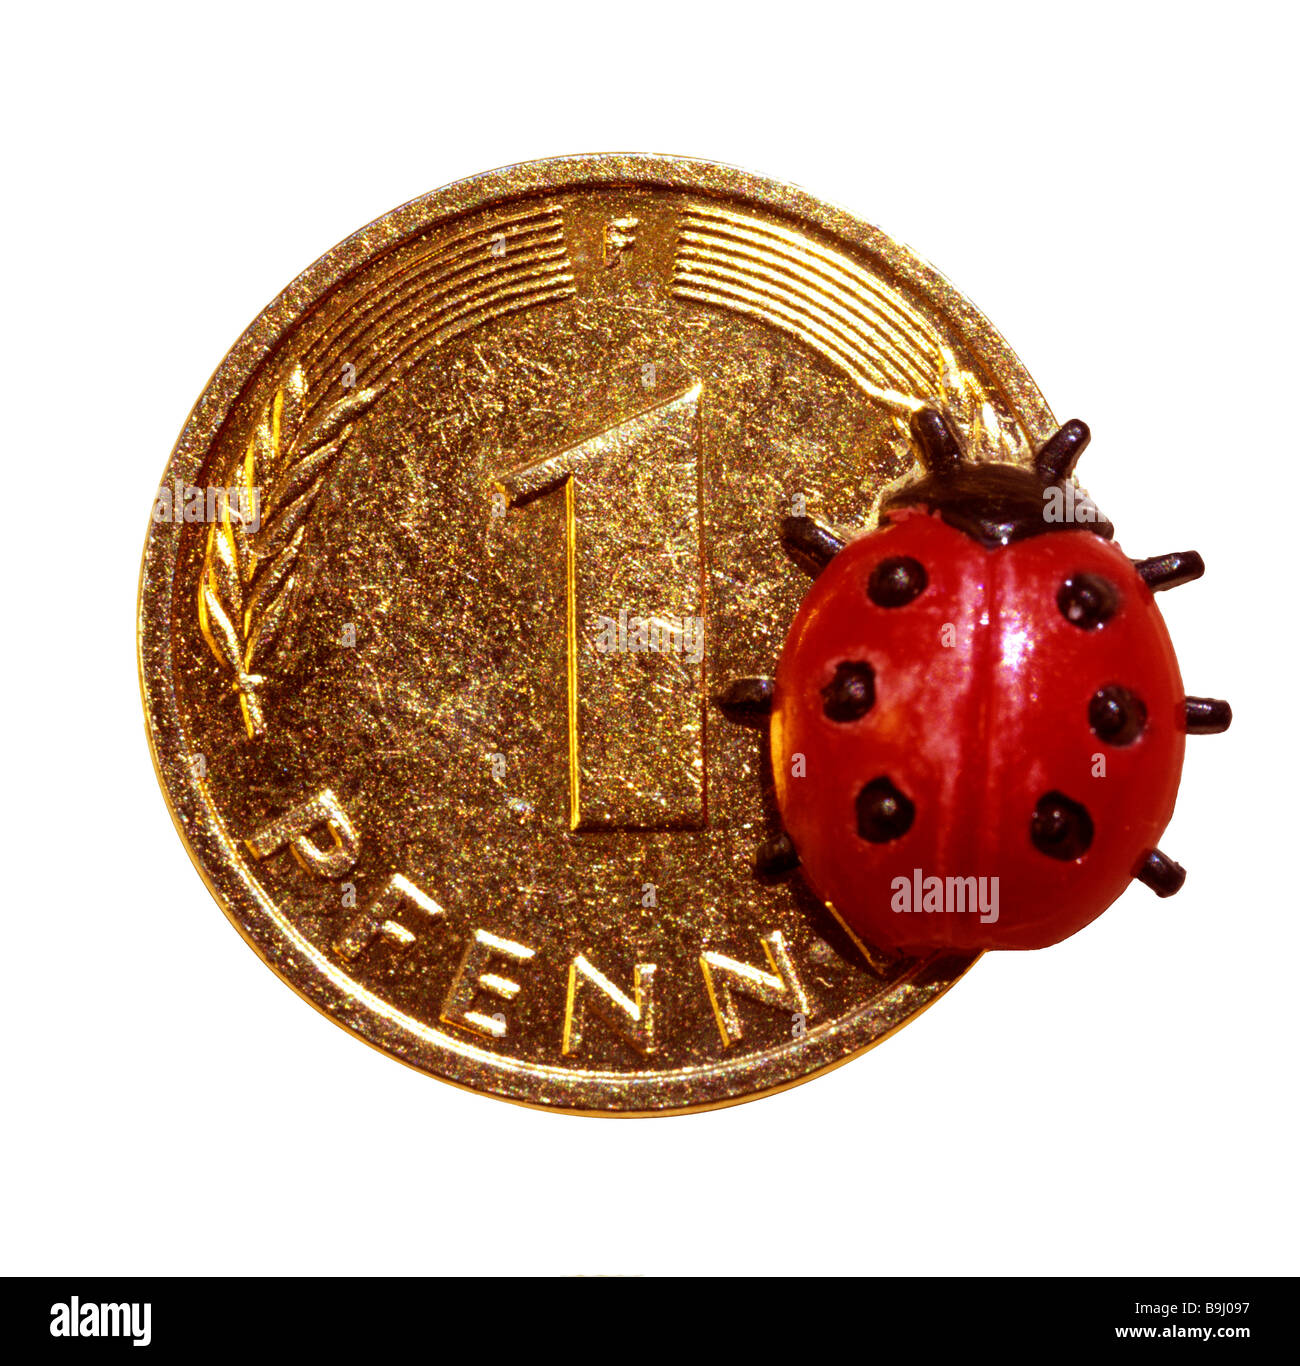 Lucky penny, lady beetle, lucky charm - Stock Image